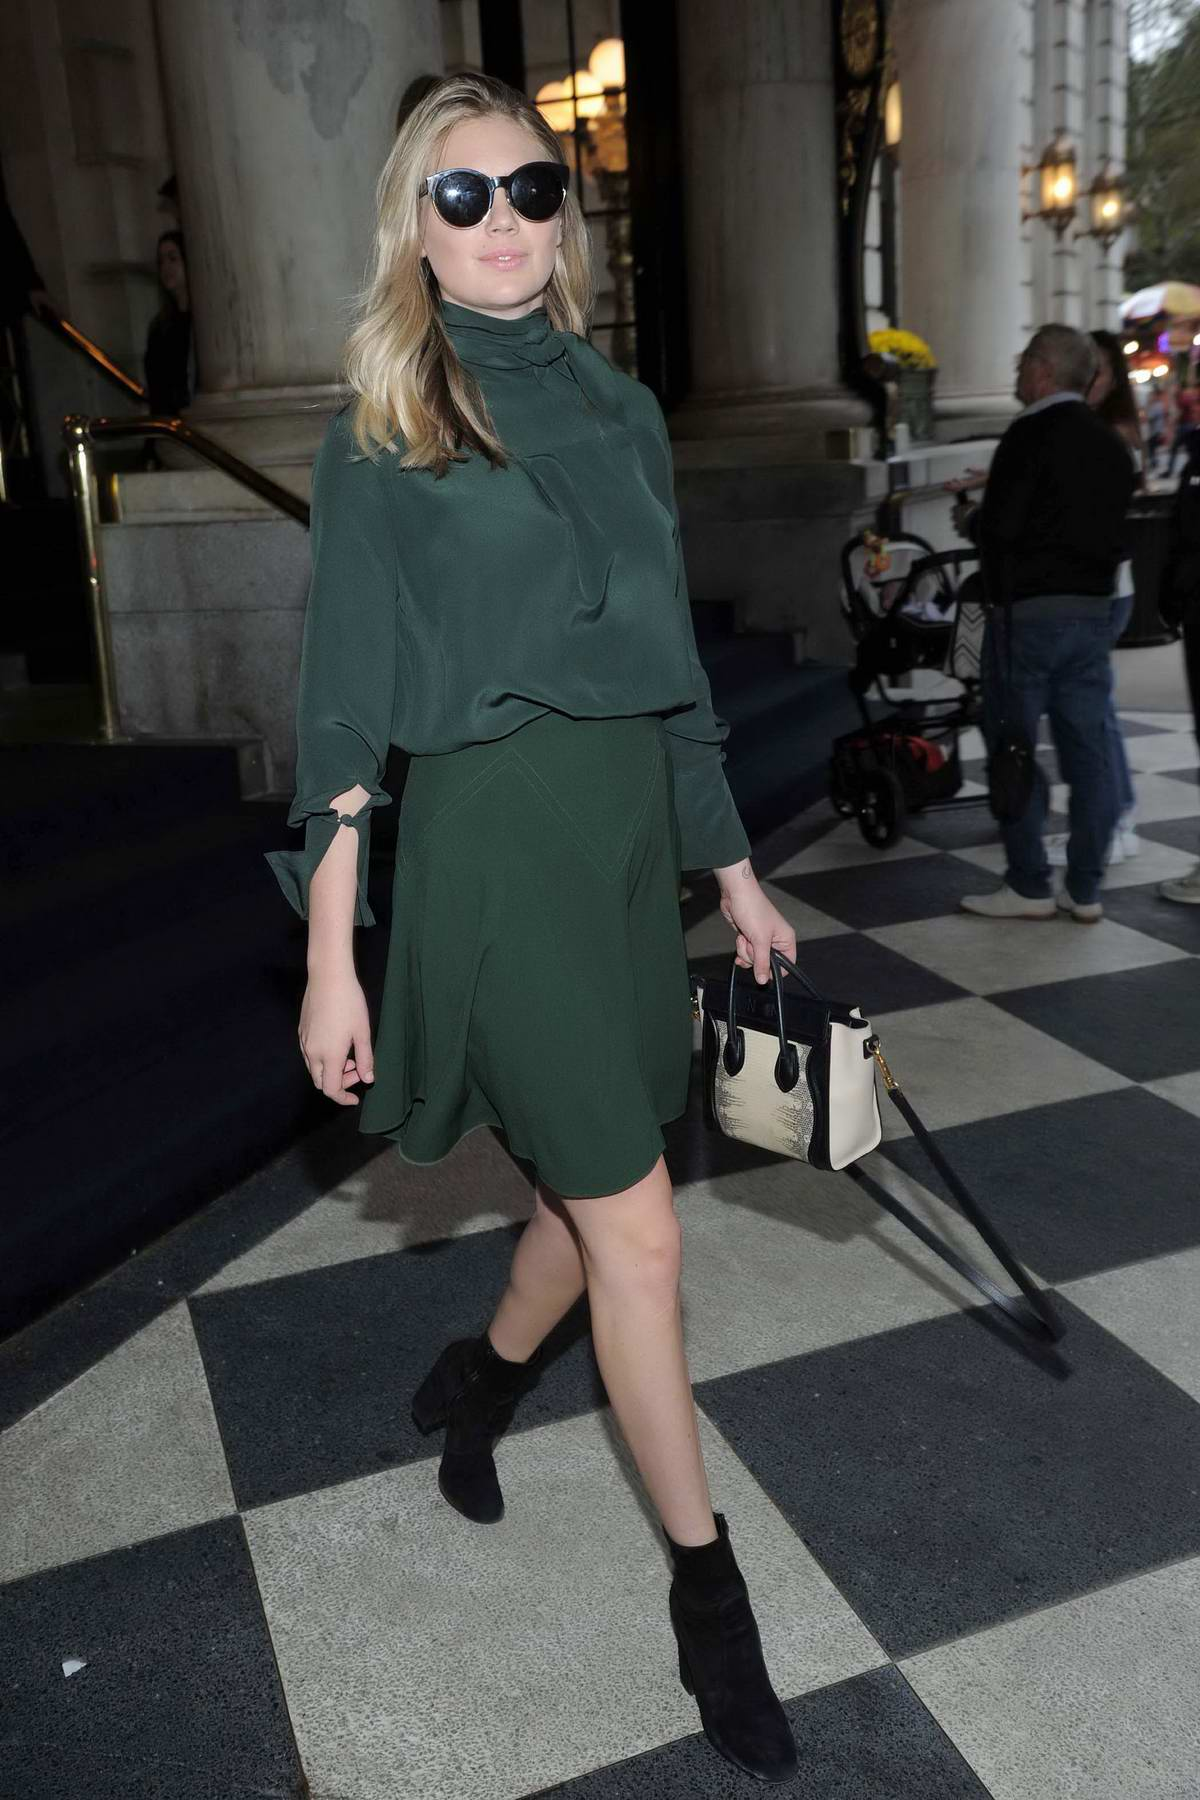 Kate Upton leaving The Plaza Hotel after enjoying treatments at the new Guerlain spa in New York